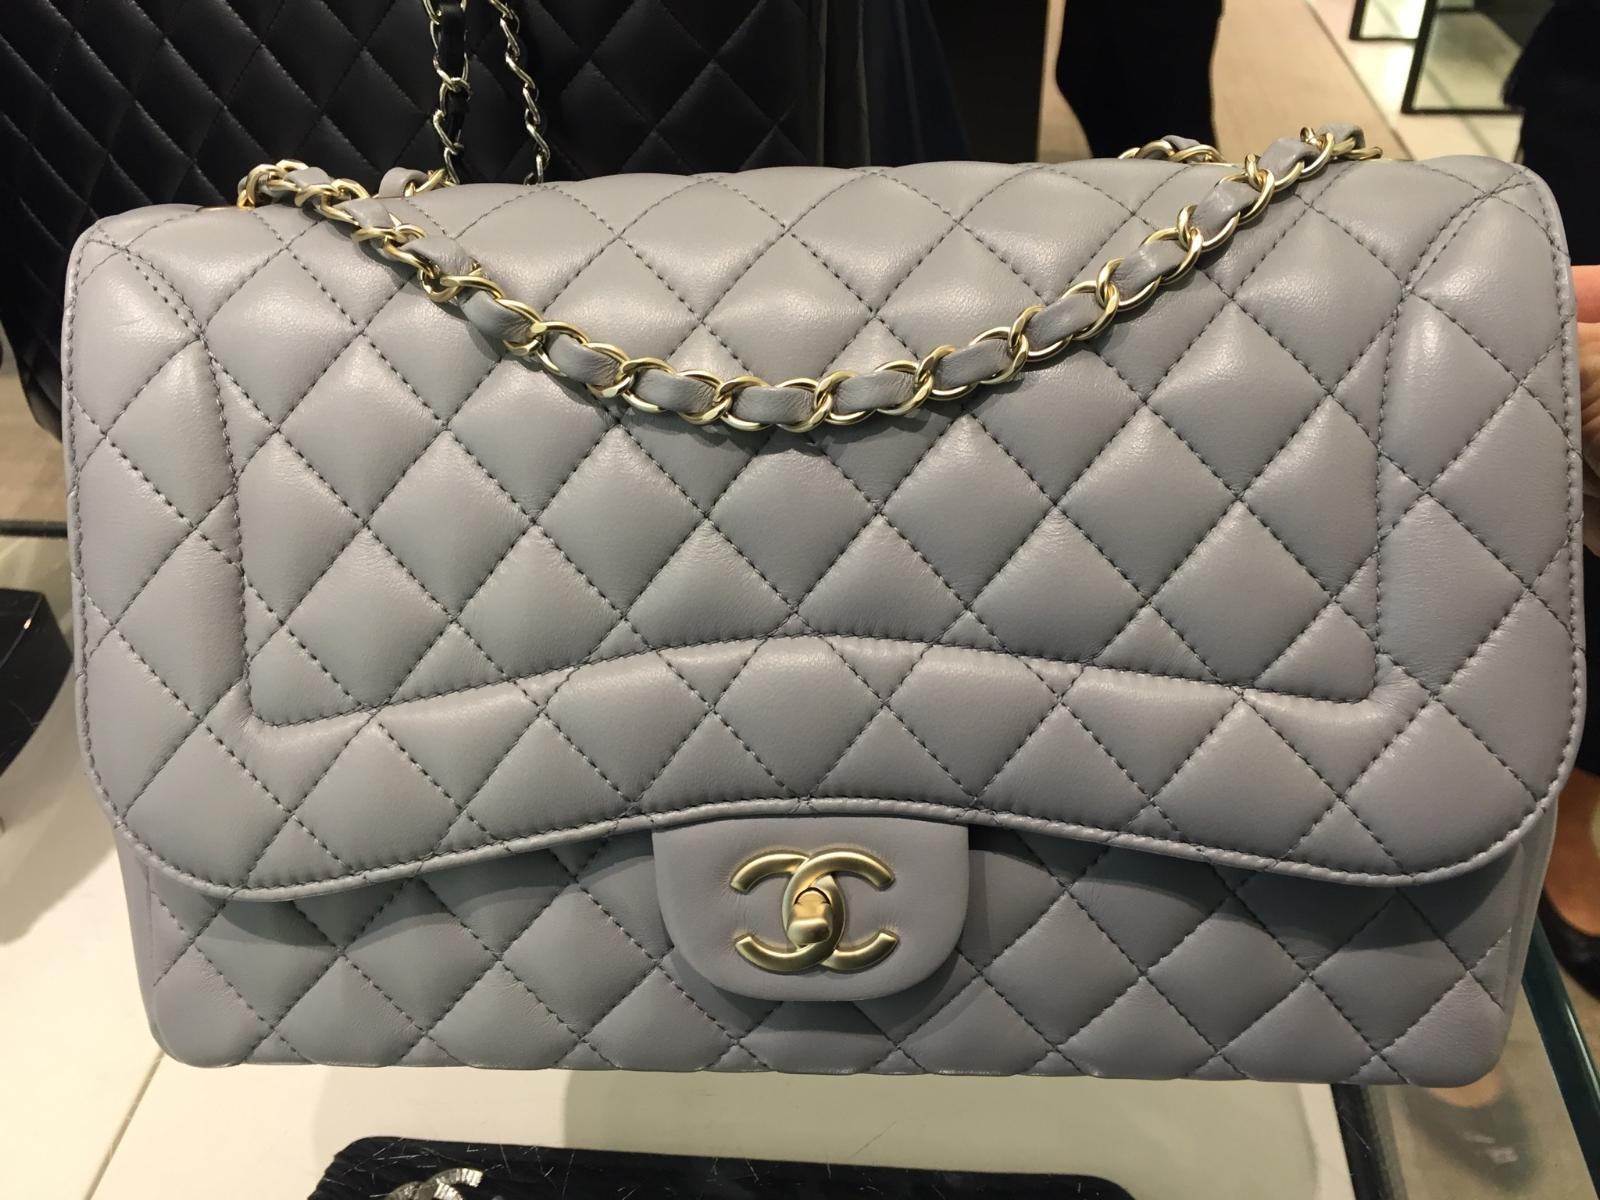 d1c1a83ea0b67b Chanel Mademoiselle Chic Flap Bag Reference Guide | Spotted Fashion